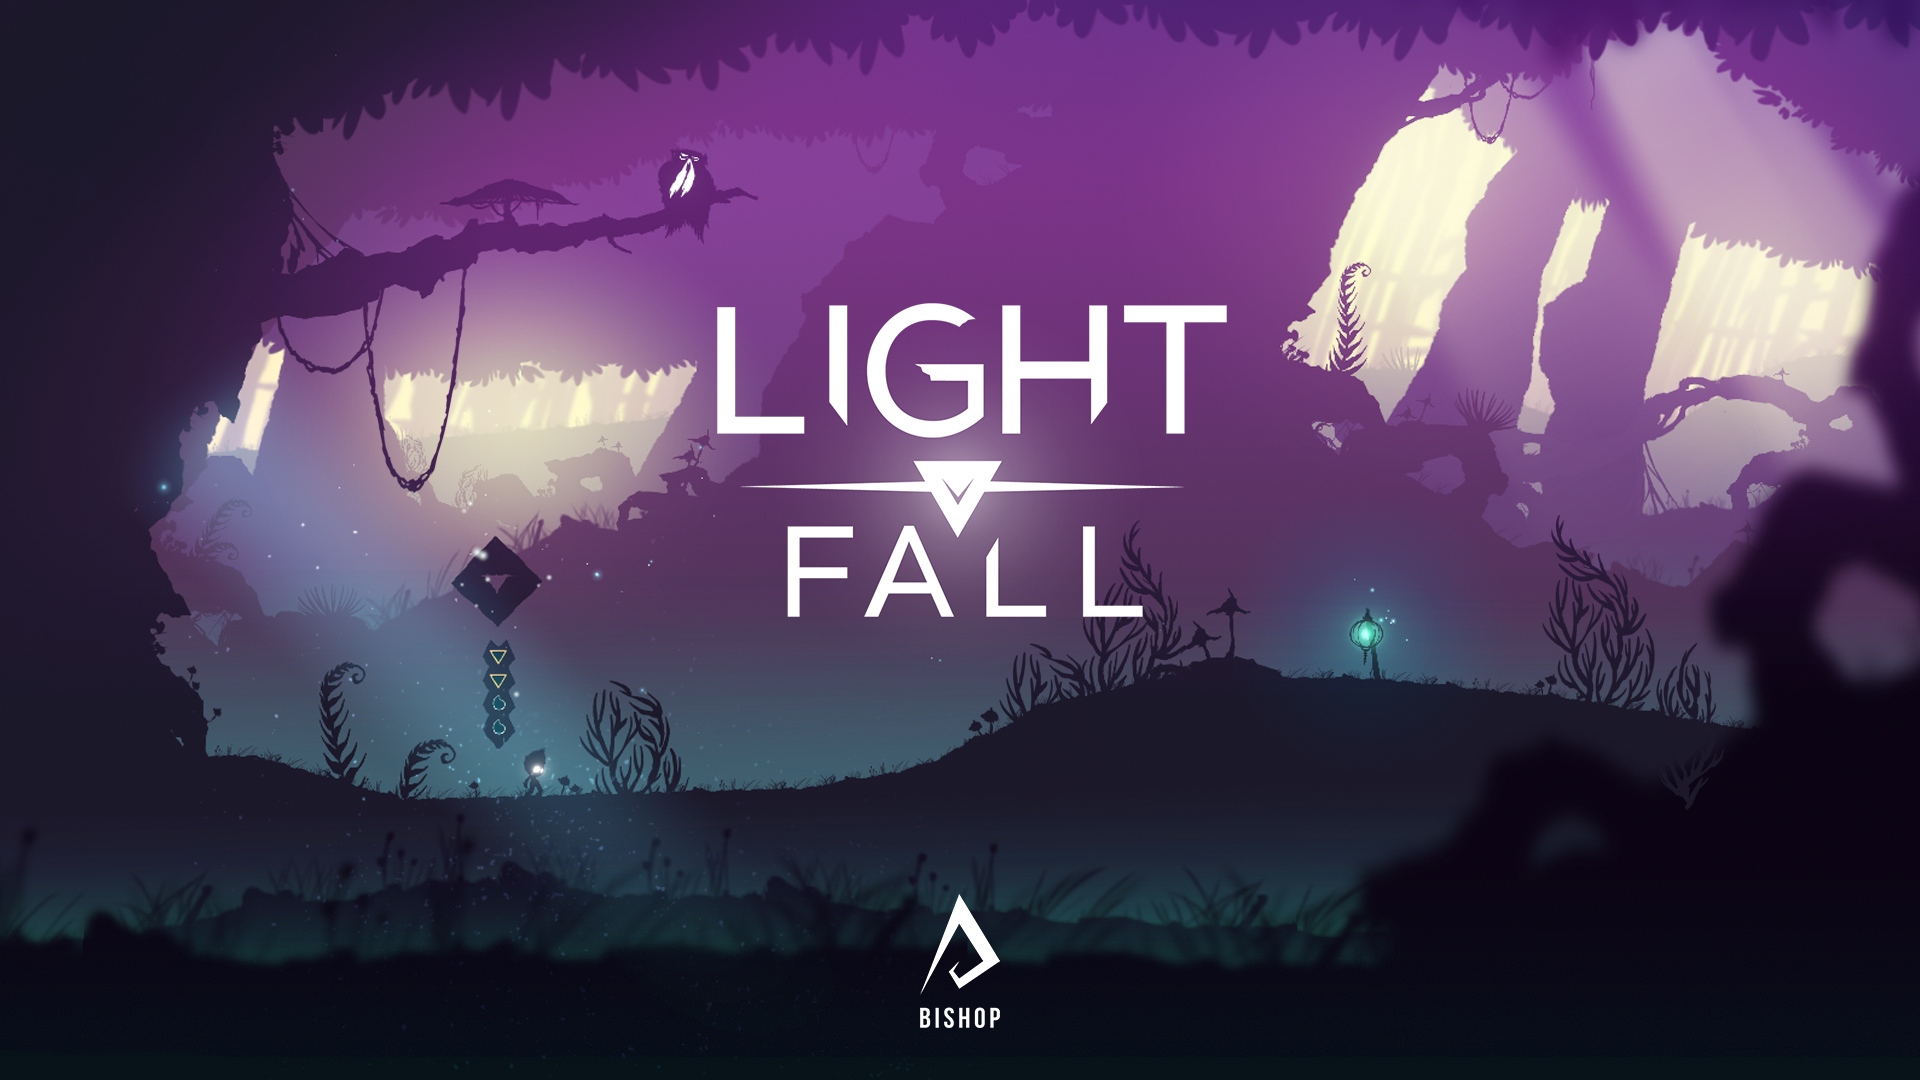 lightfall_07.jpg